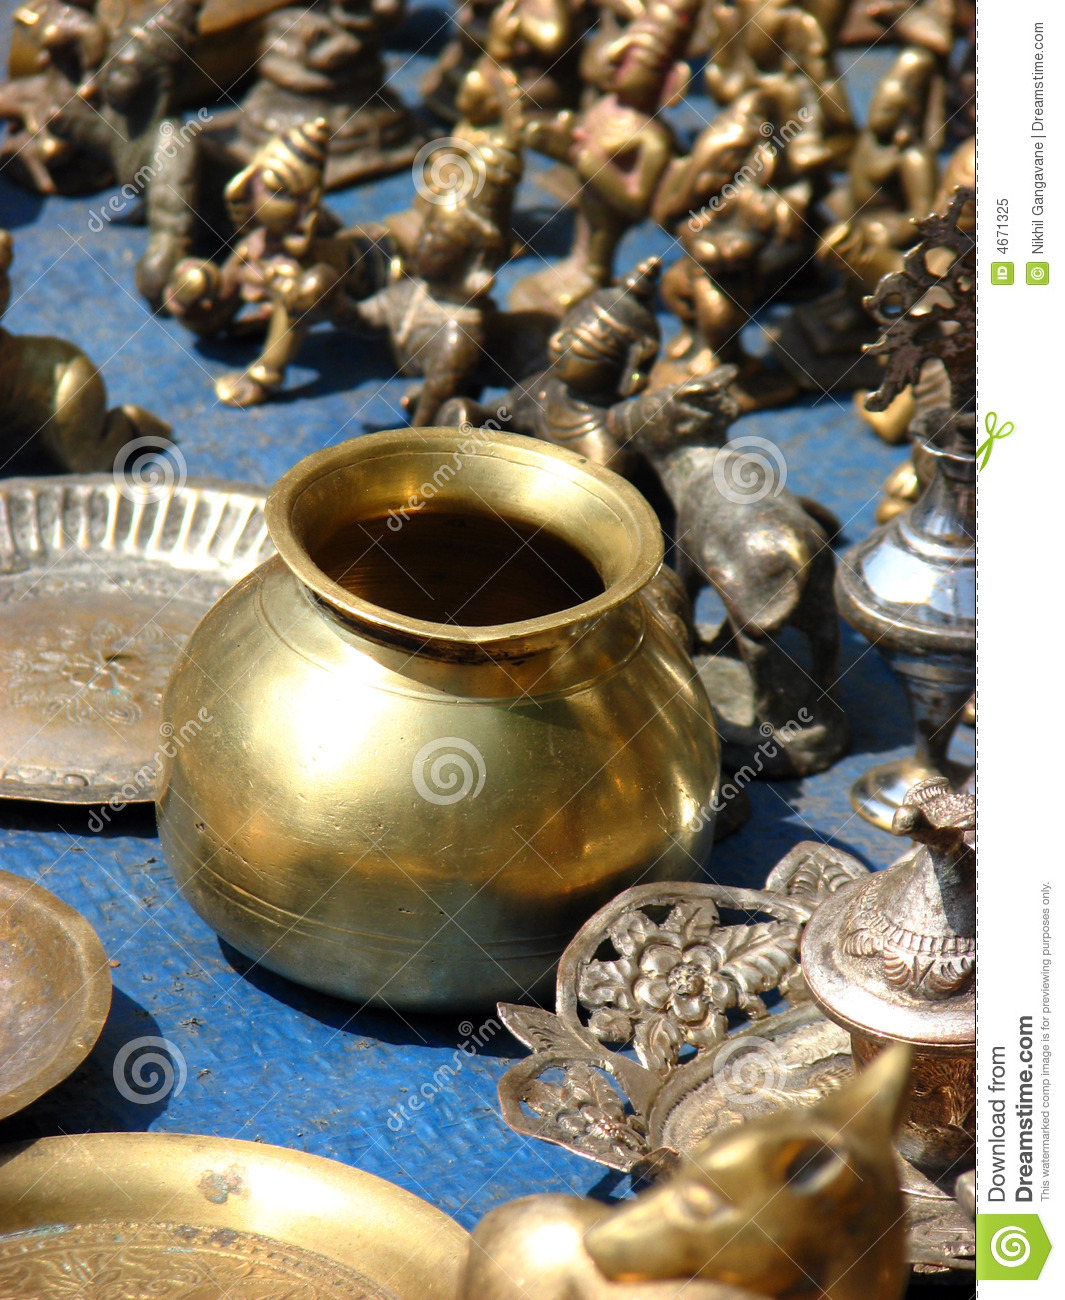 Brass Vessel stock image  Image of unique, india, indian - 4671325